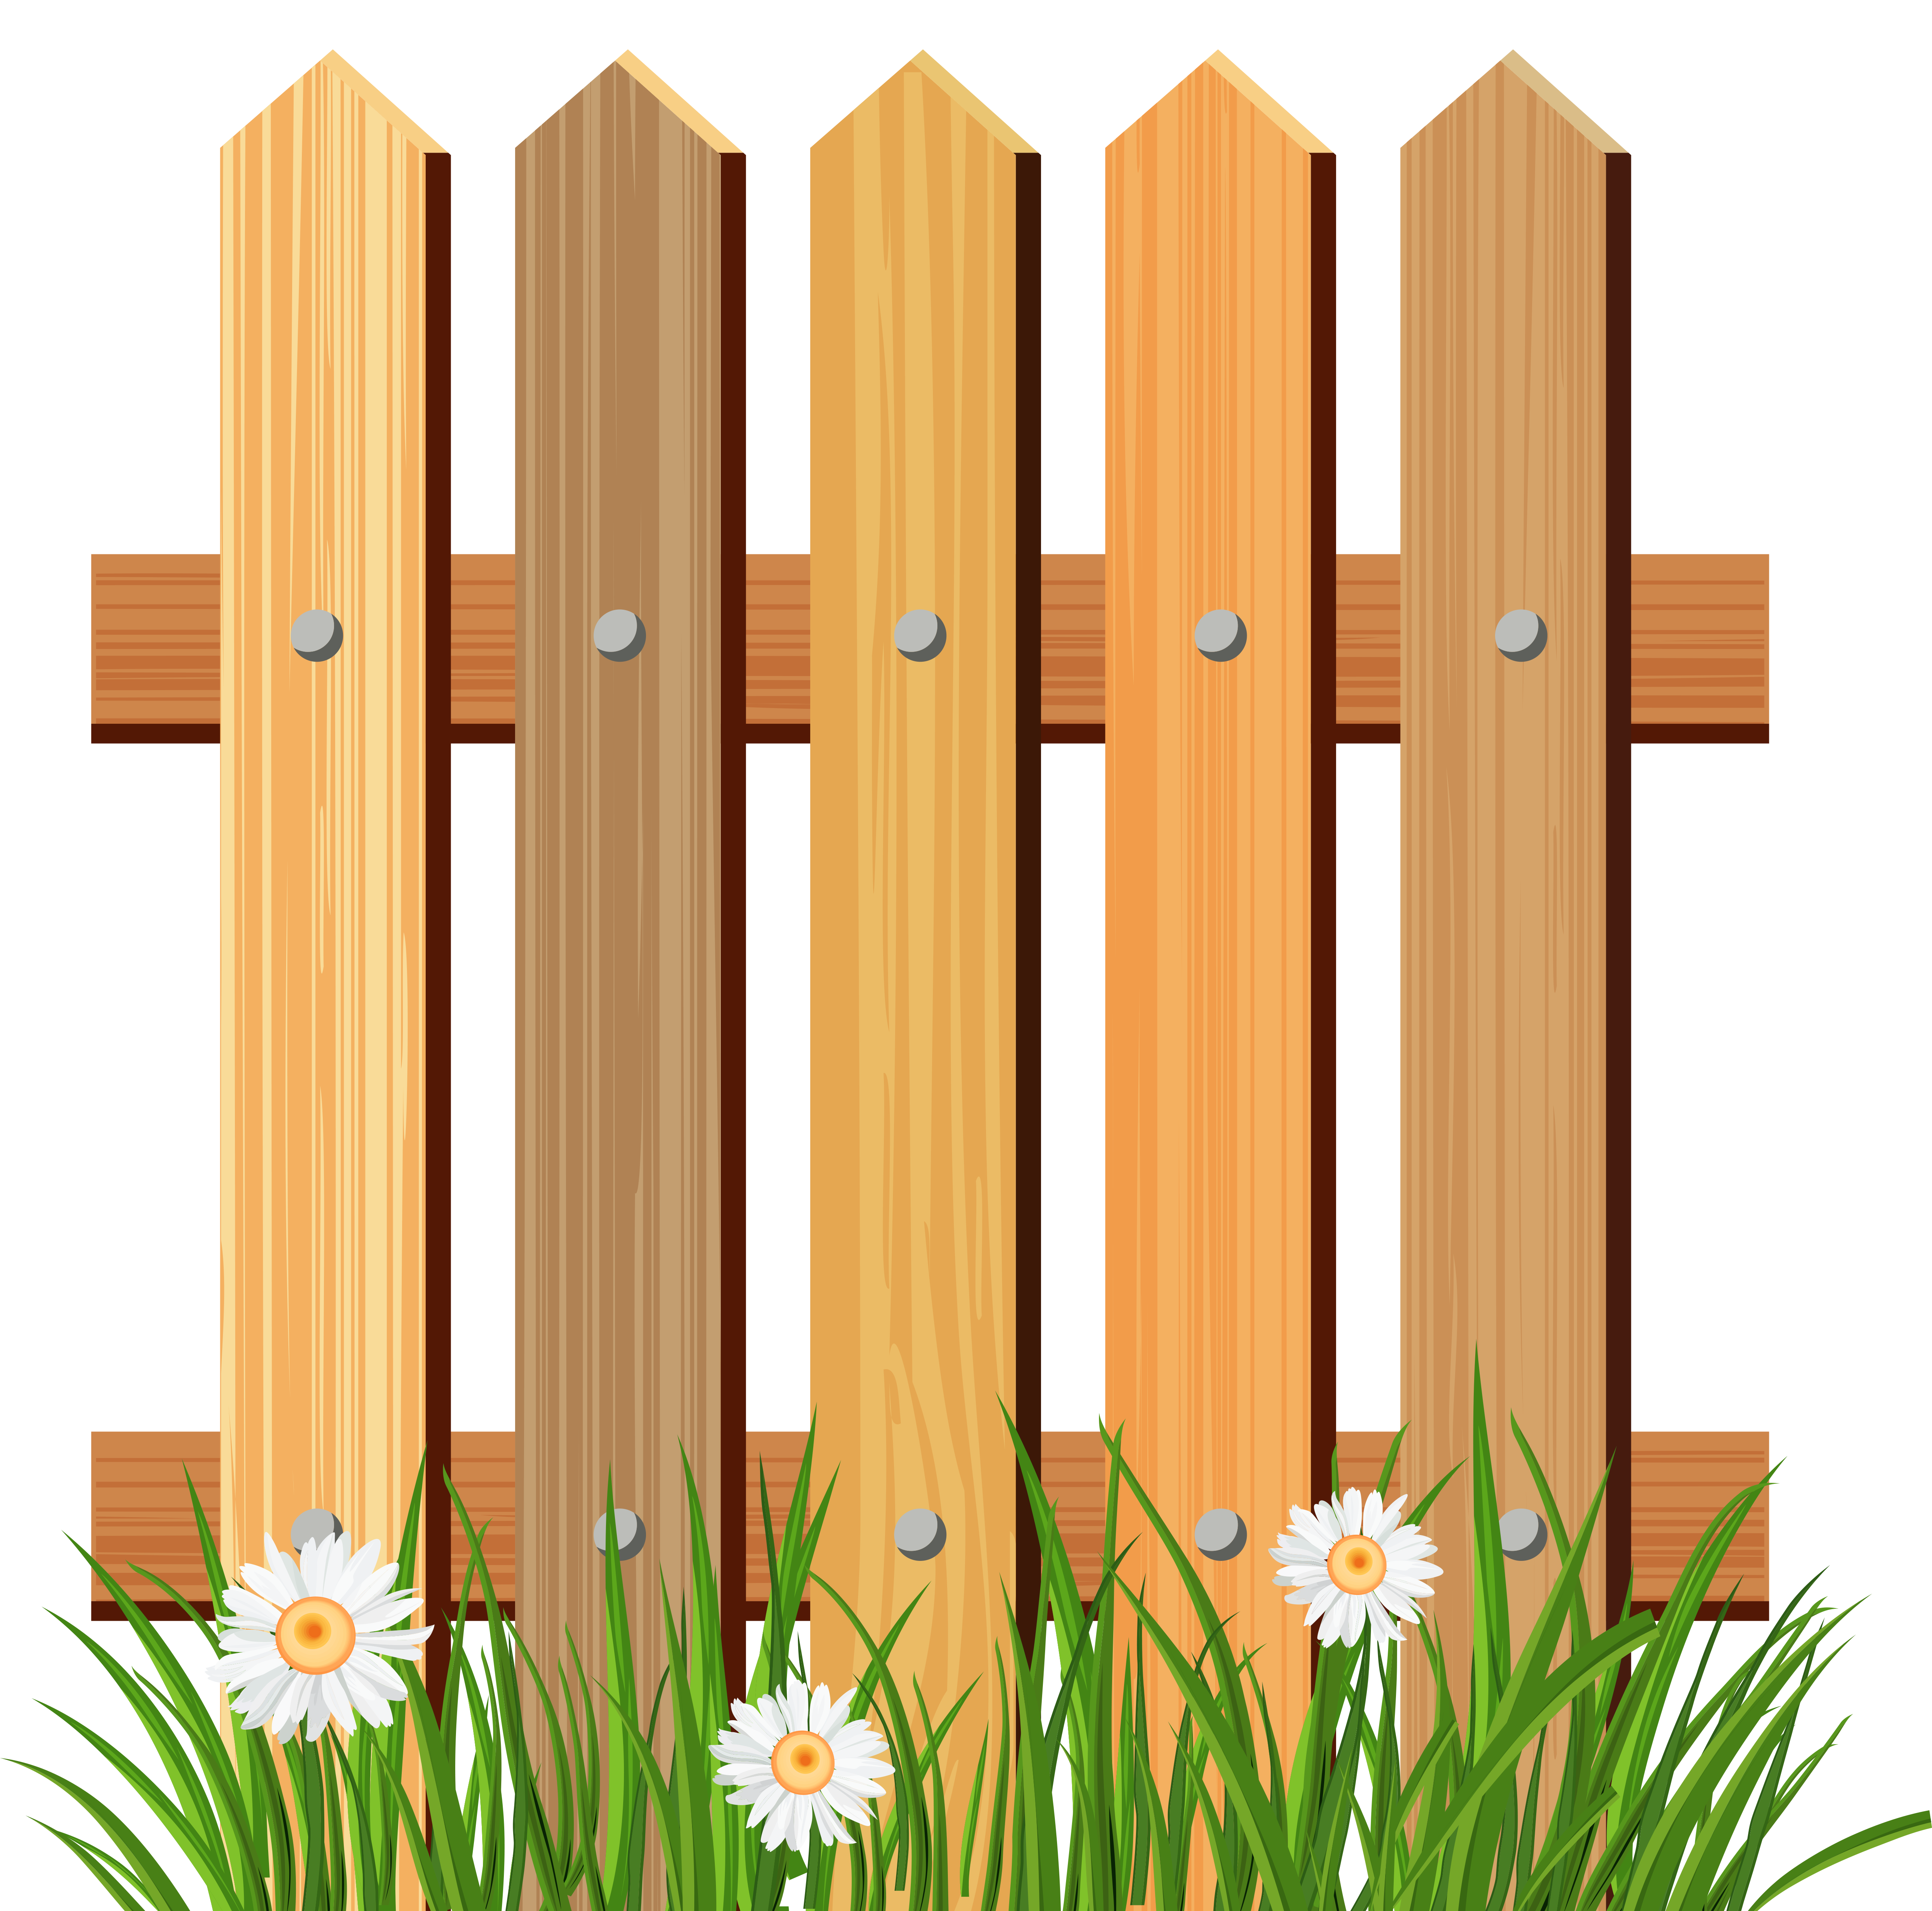 Fence clipart png. Wooden garden with grass